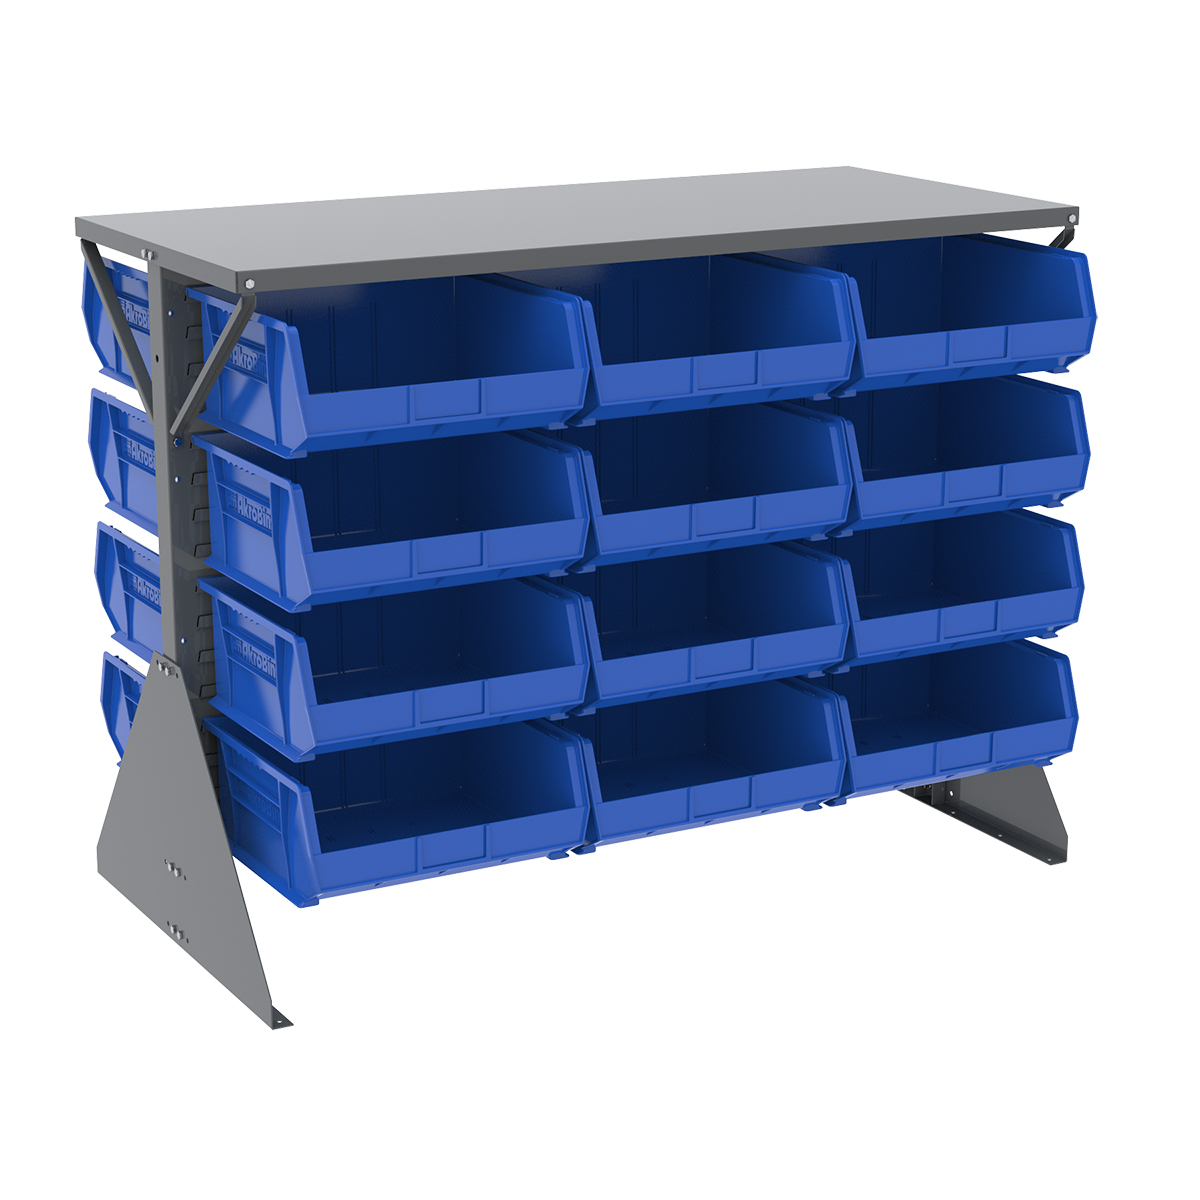 Item DISCONTINUED by Manufacturer.  Low Profile Floor Rack, 2-Sided, Shelf w/ 24 AkroBins, Gray/Blue (30606GY250B).  This item sold in carton quantities of 1.